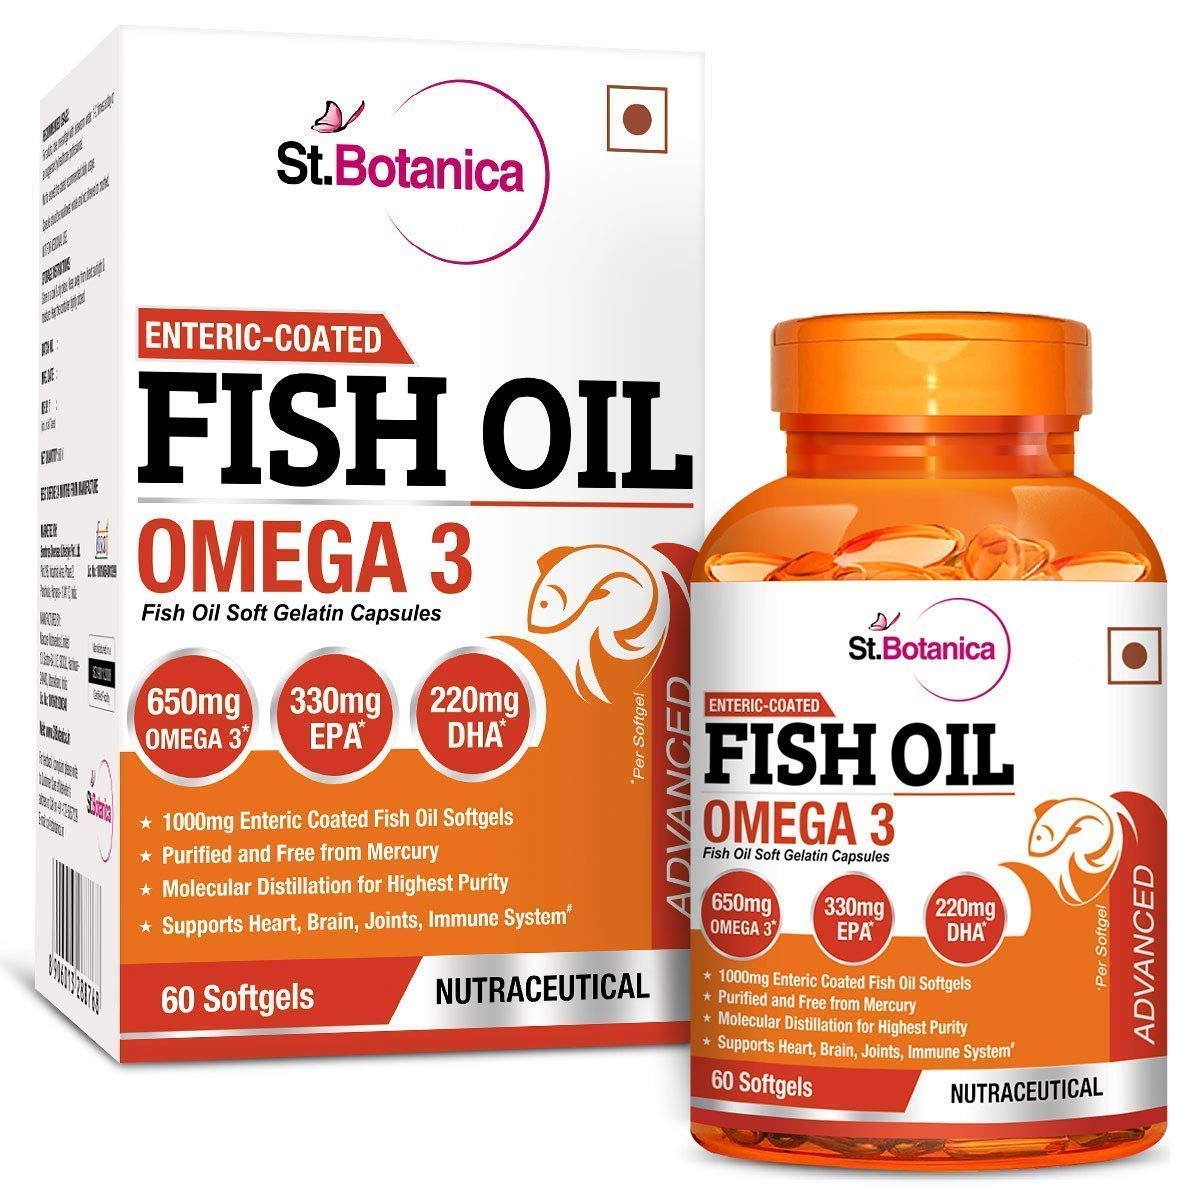 StBotanica Fish Oil is the best fish oil capsules in India